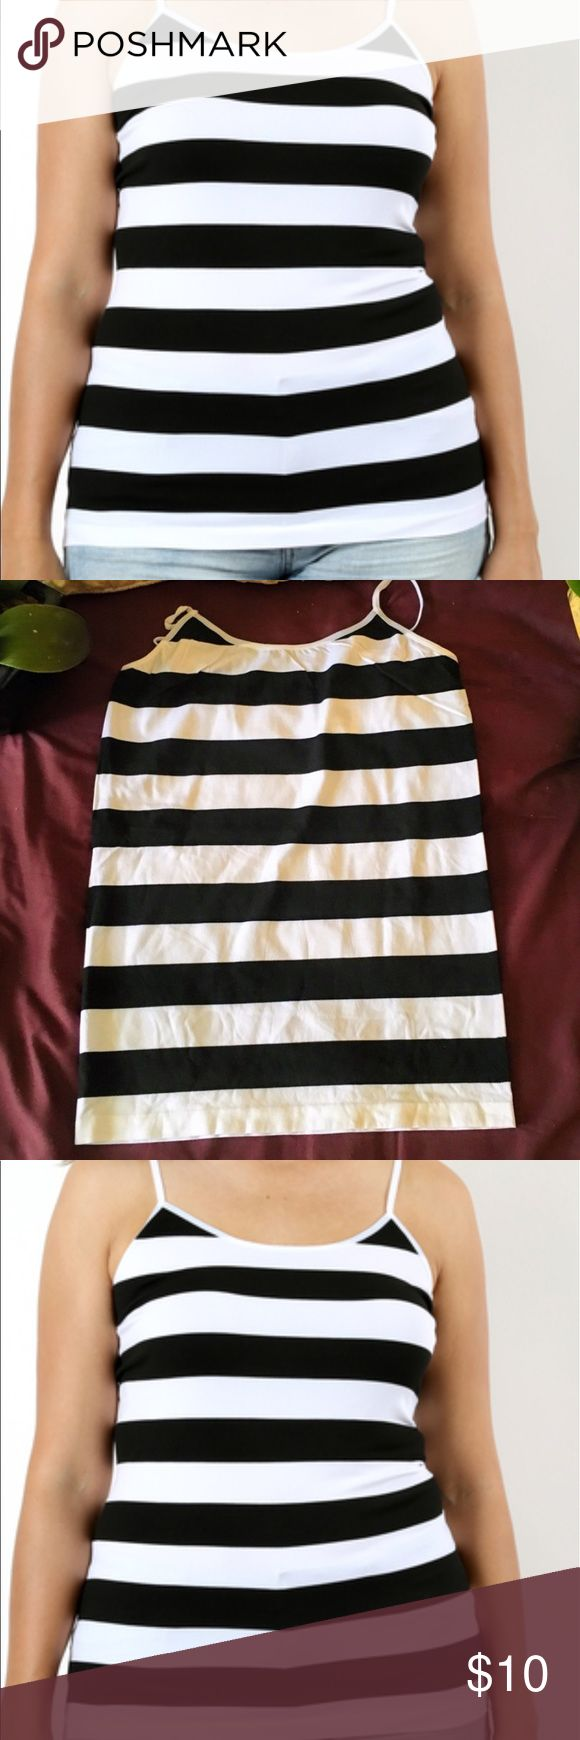 💕plus size seamless stripe cami black and white PLUS SIZE STRIPED SEAMLESS CAMI WITH SPAGHETTI STRAPS  BODY LENGTH : 22/23app 50% NYLON 40% POLYESTER 10% SPANDEX   Great stretch nice fit body shaper Tops Tank Tops